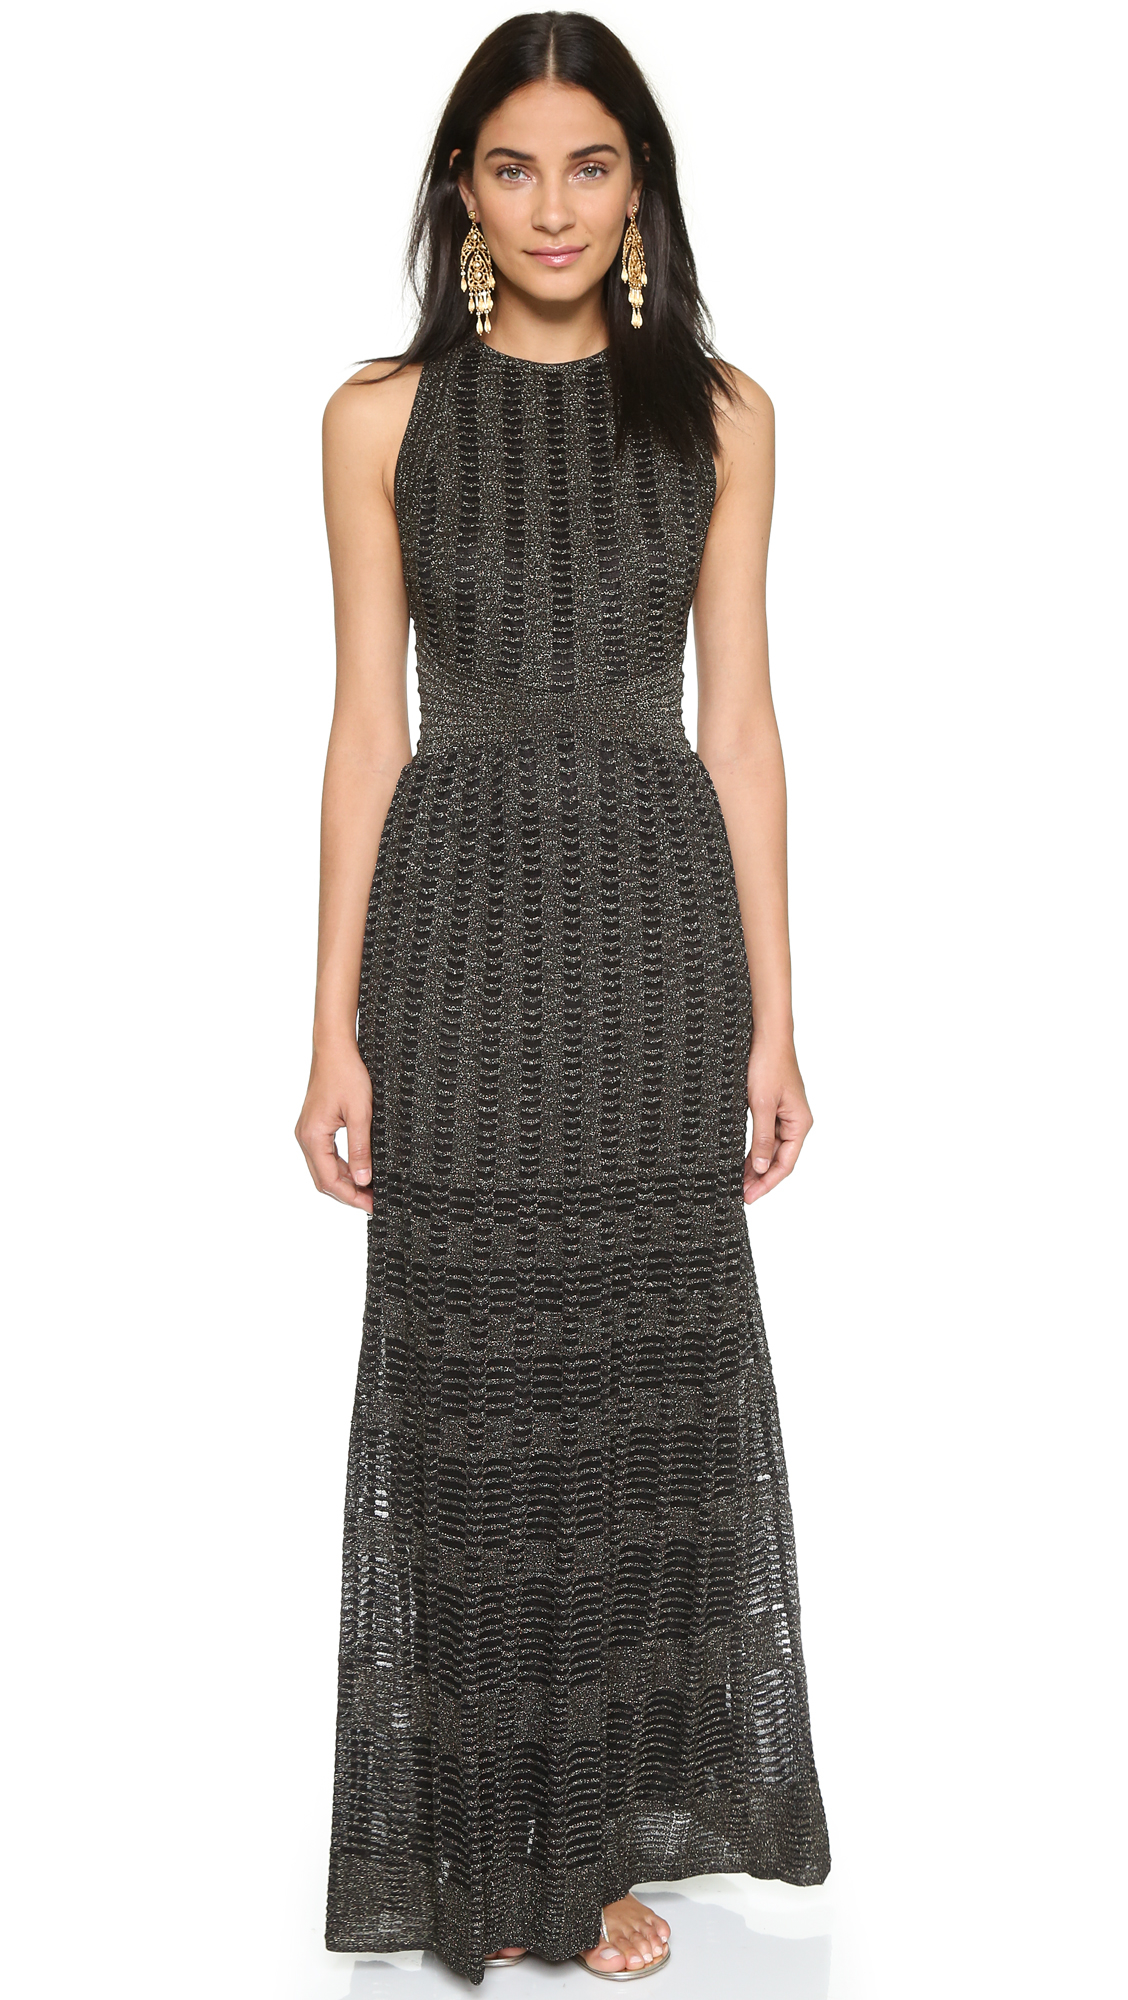 M missoni Knit Stripe Maxi Dress - Black in Black  Lyst